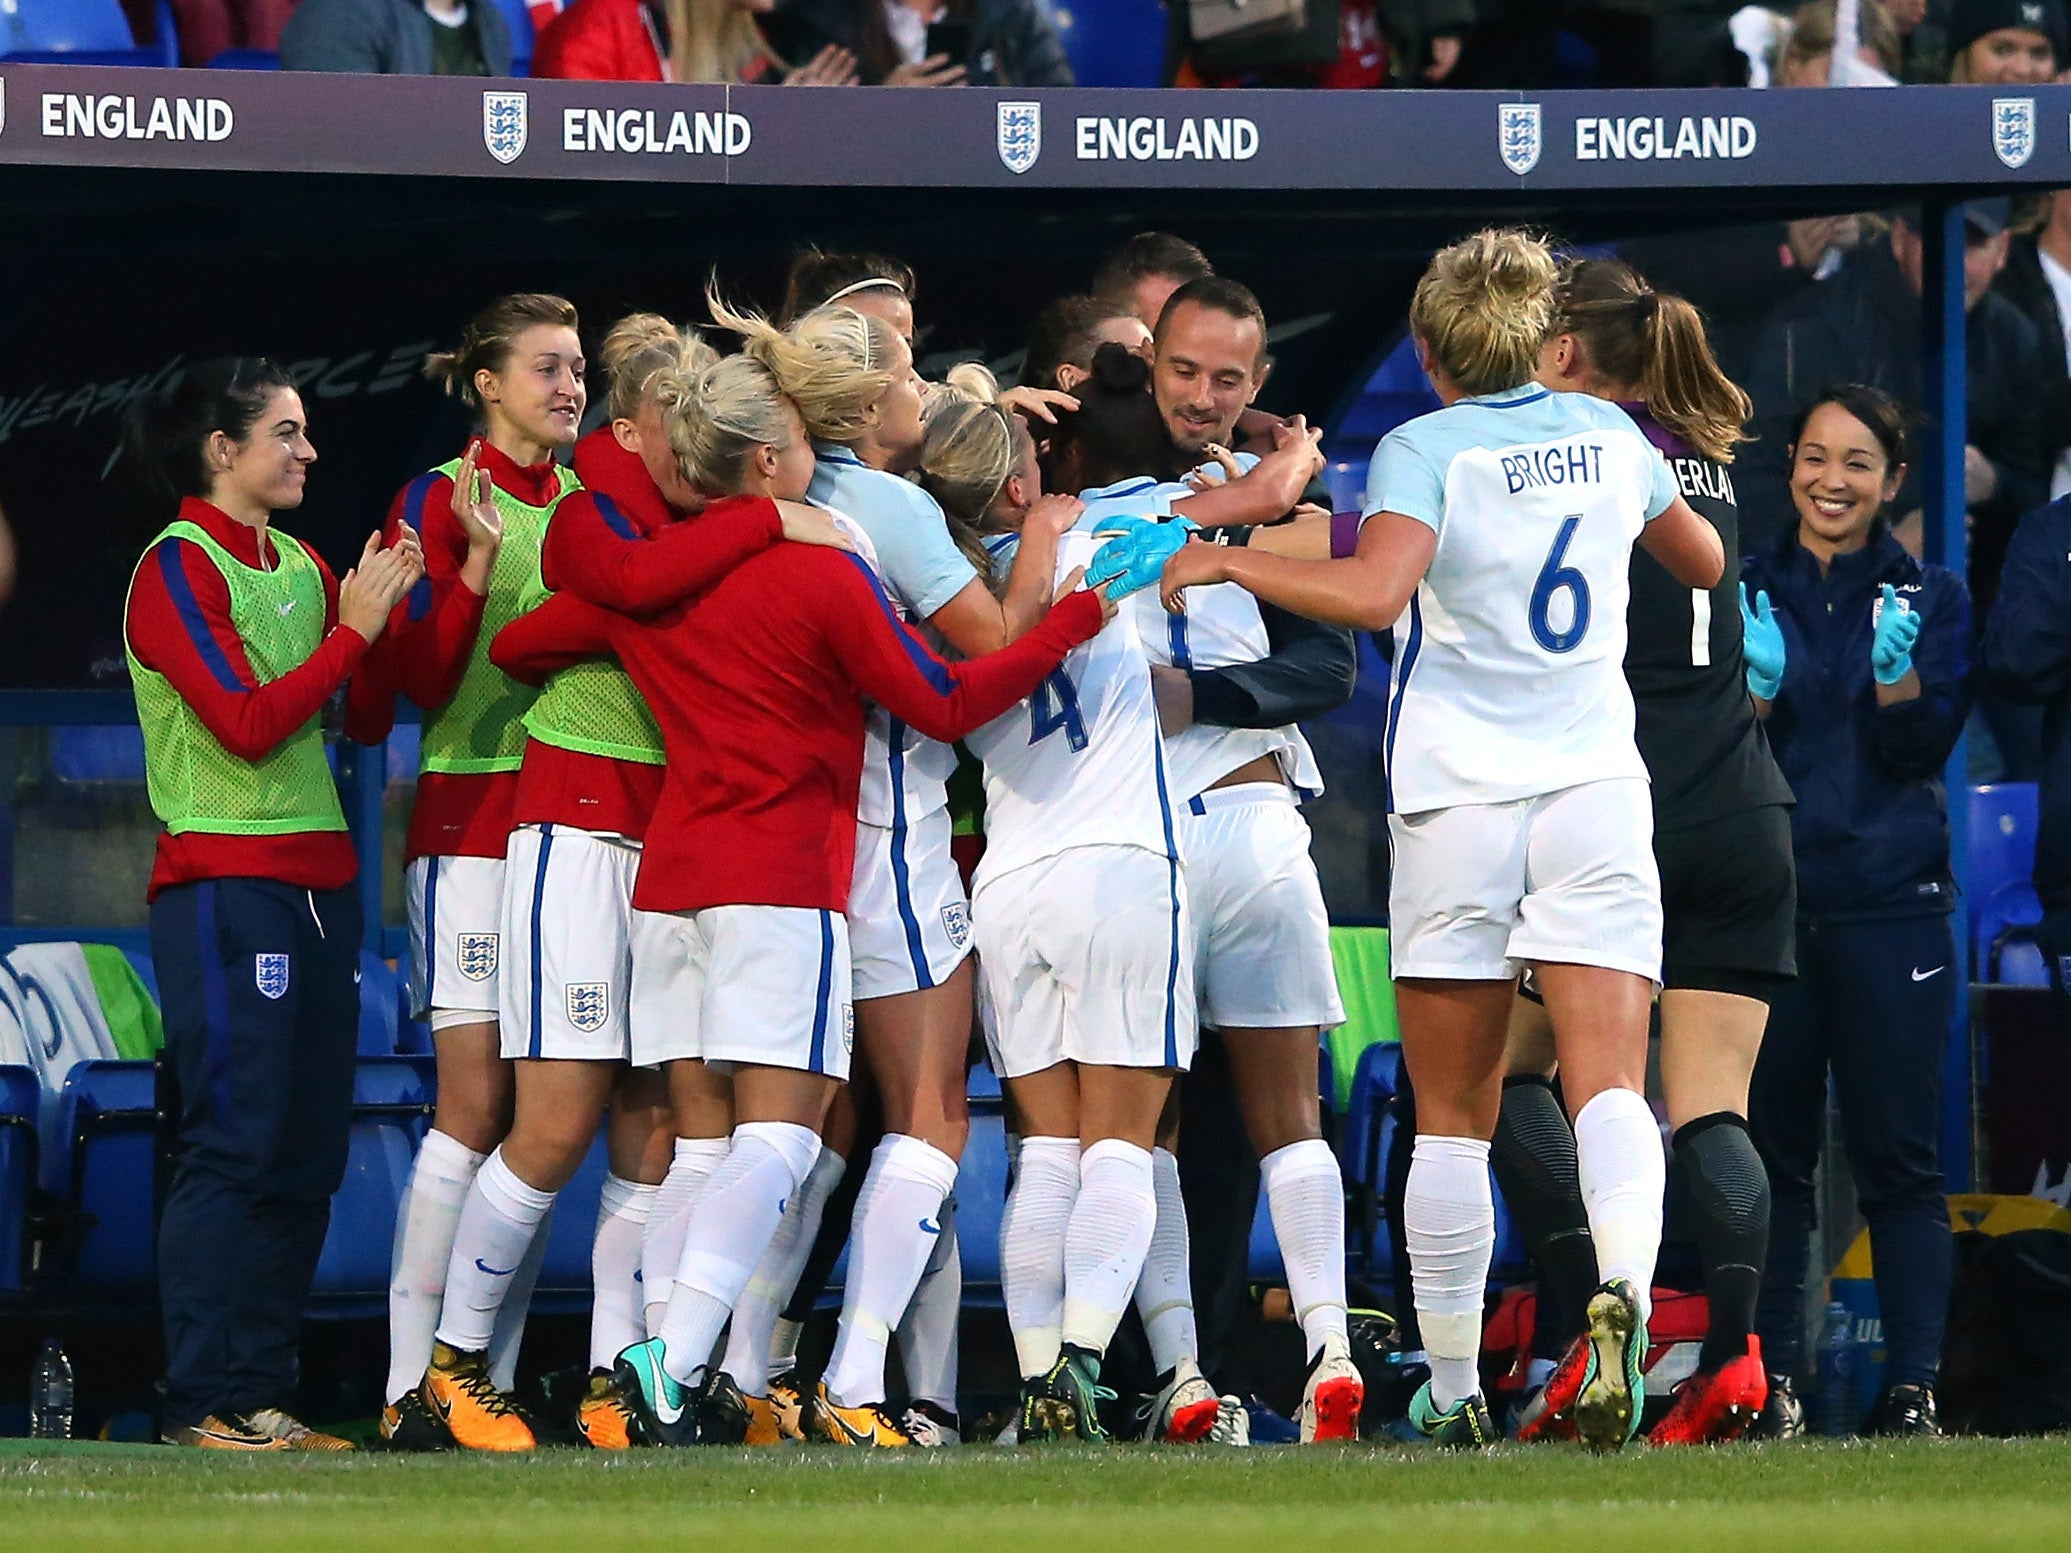 England Women appear stand with manager Mark Sampson with thumping win over Russia